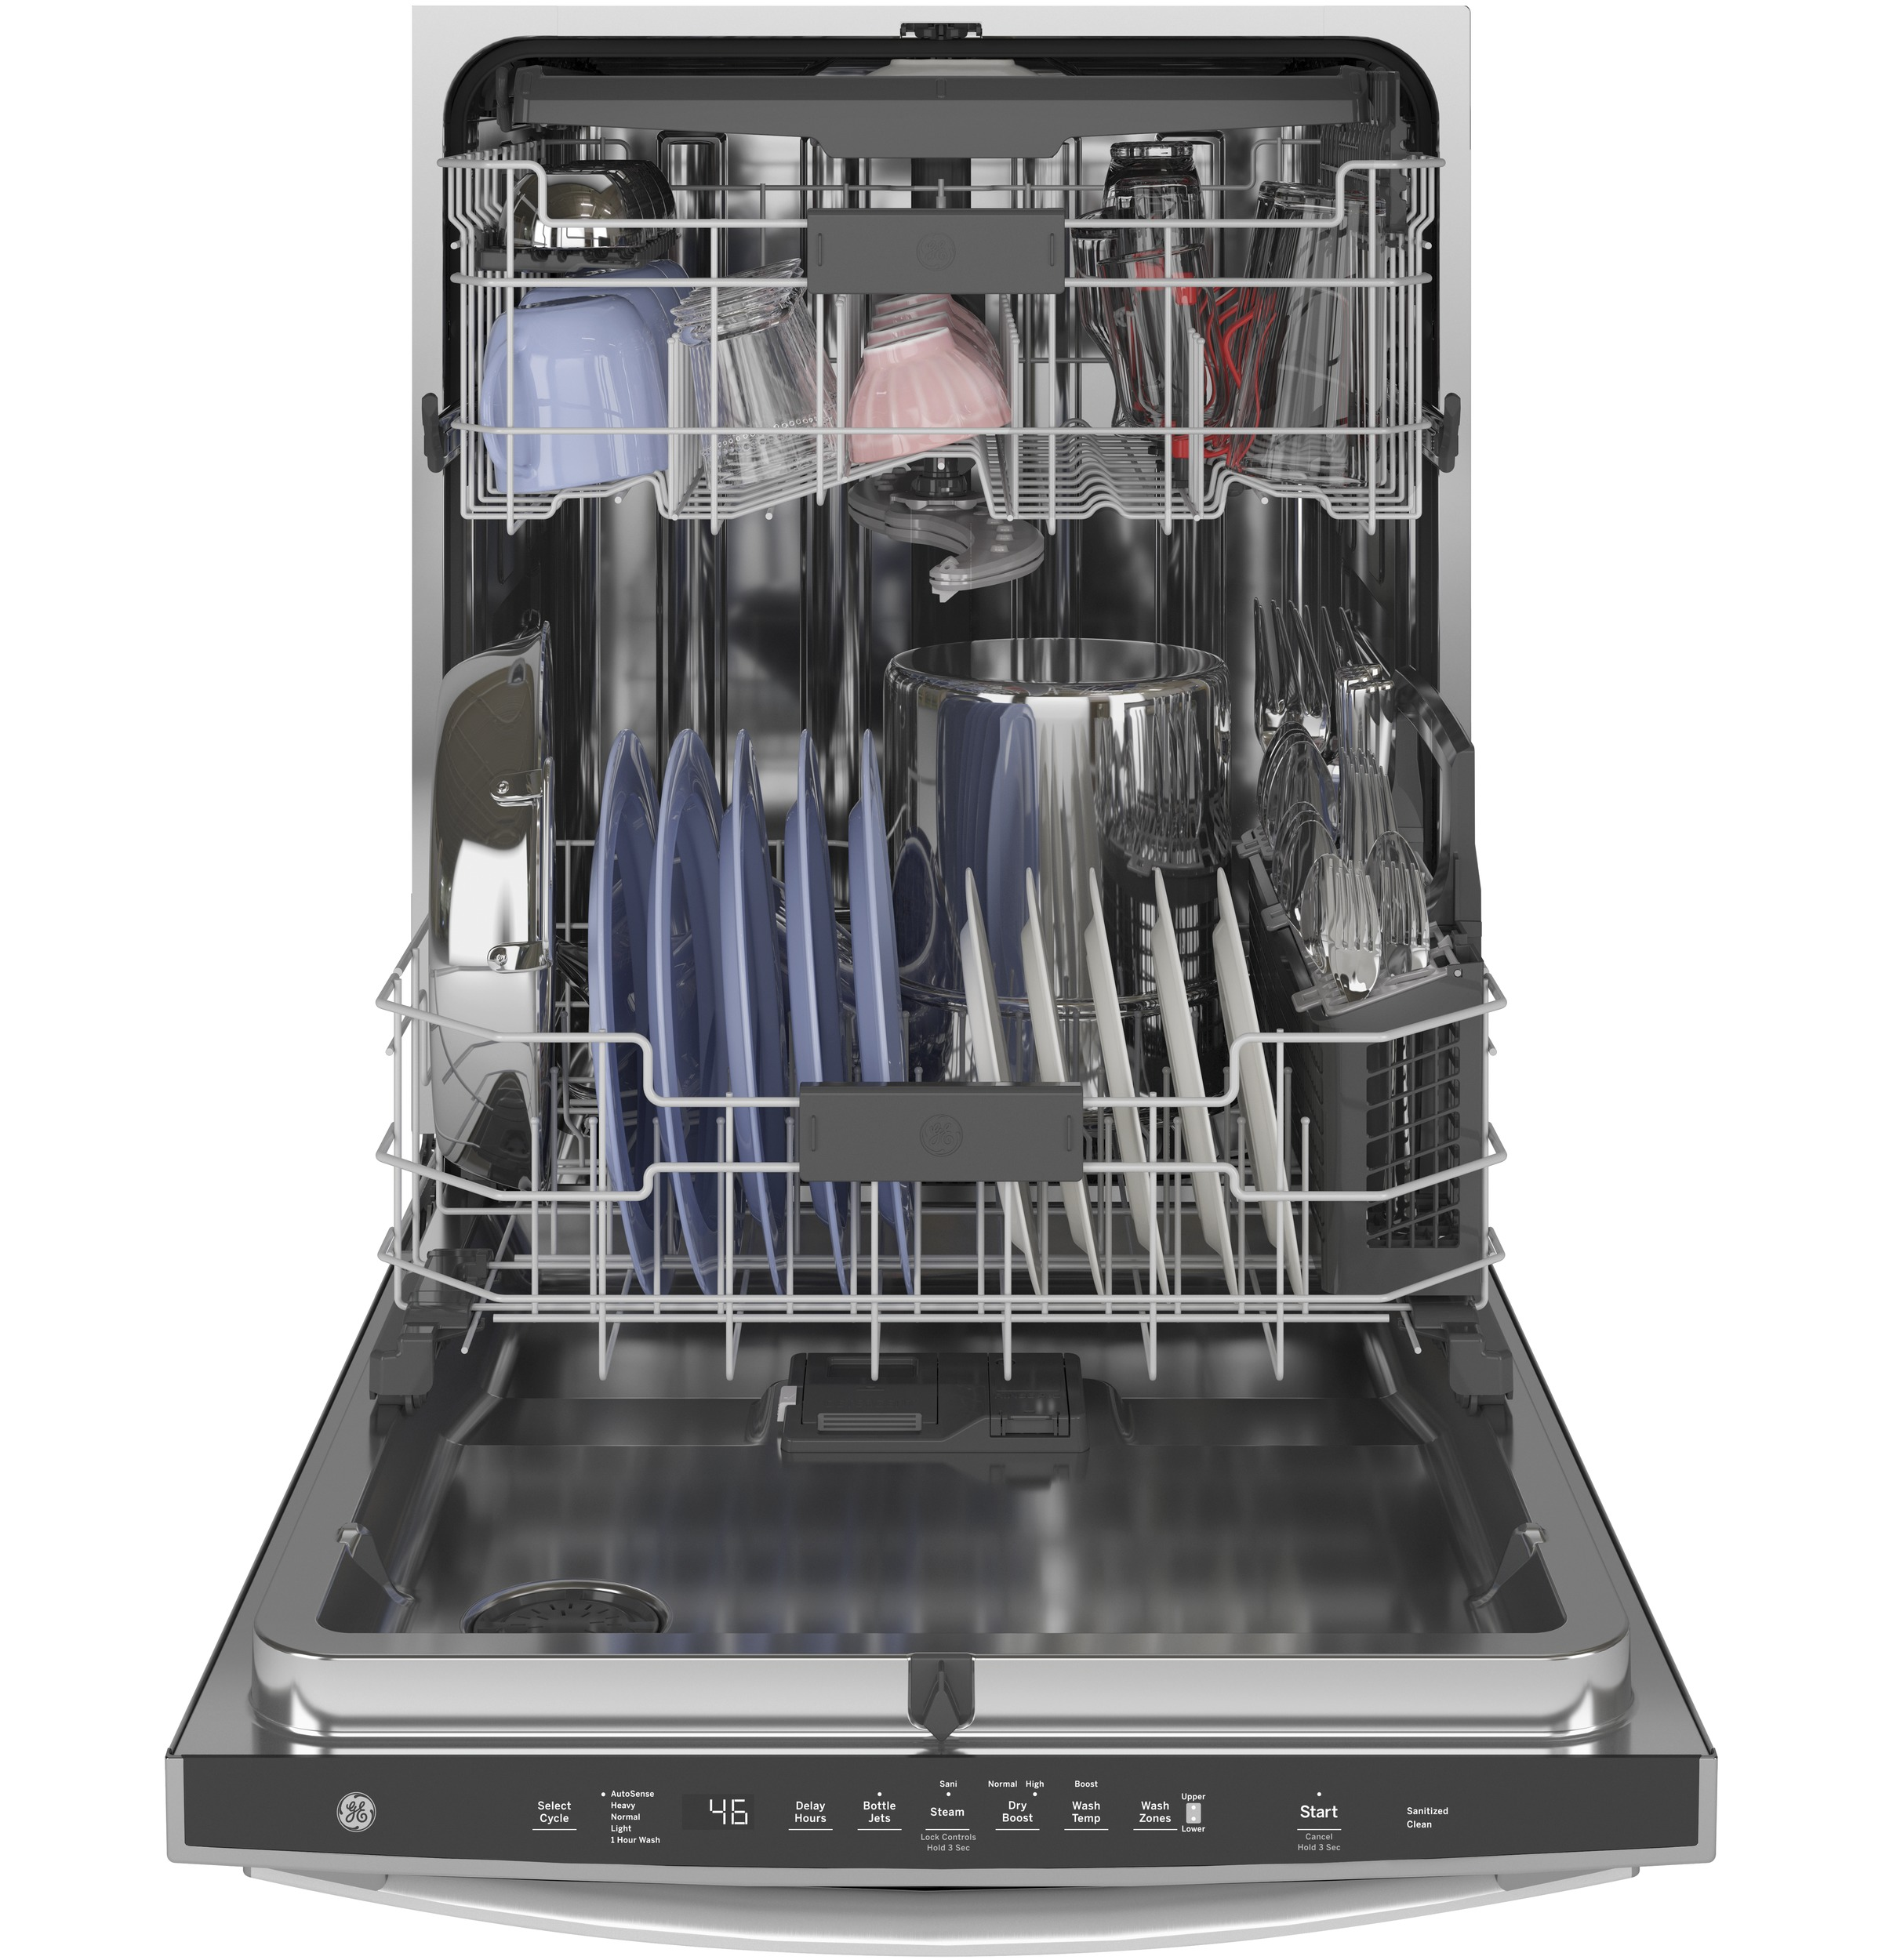 Model: GDT665SYNFS | GE GE® Top Control with Stainless Steel Interior Dishwasher with Sanitize Cycle & Dry Boost with Fan Assist